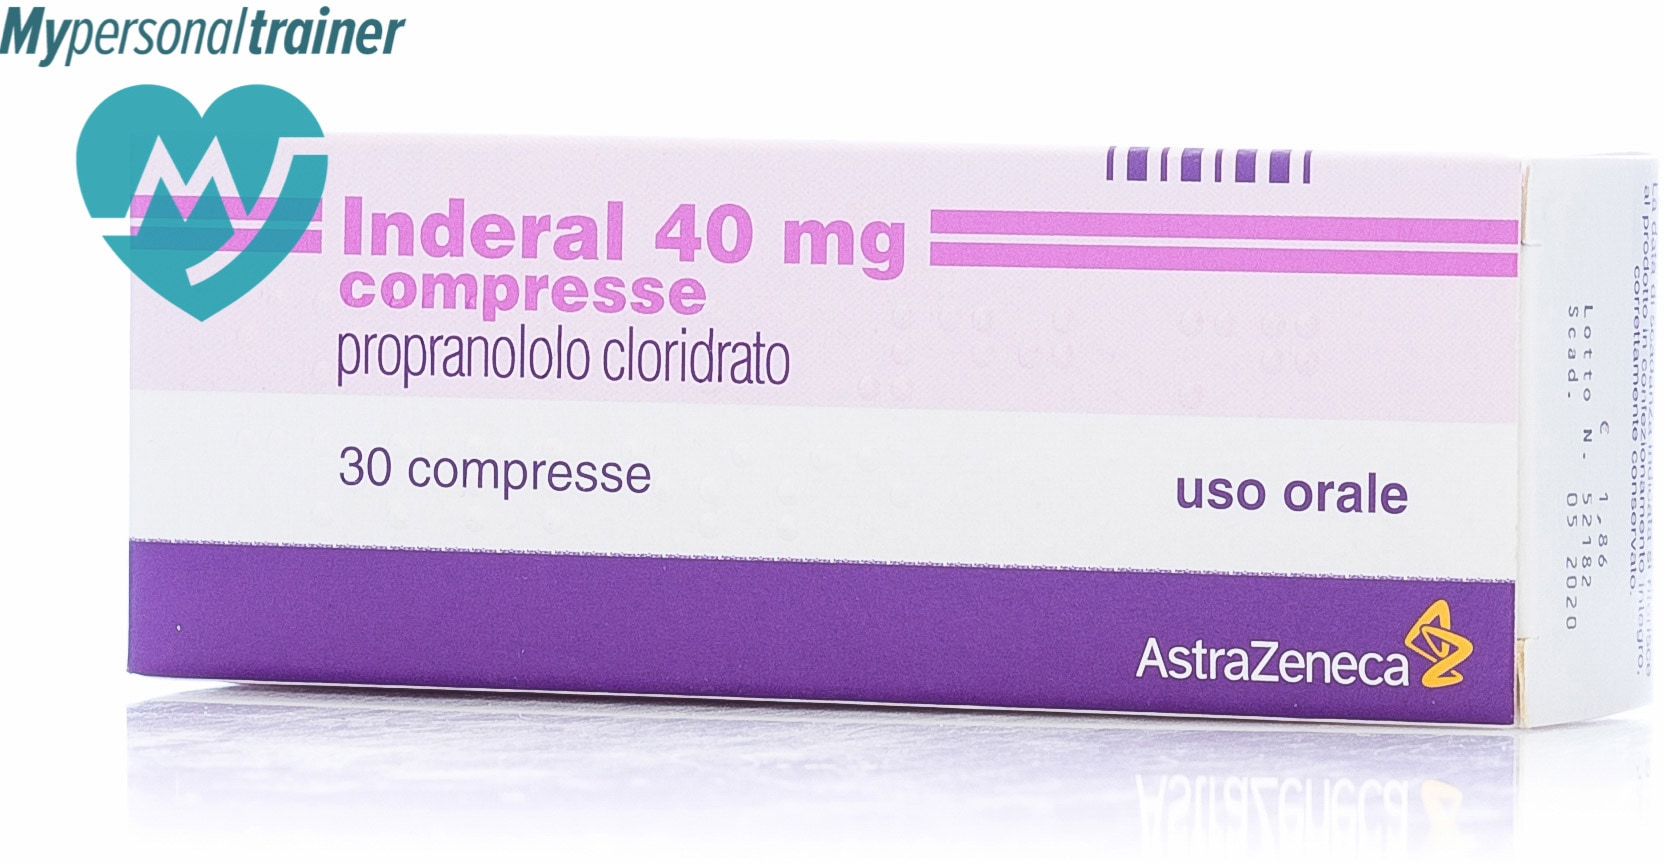 How To Get Inderal 40 mg From Canada